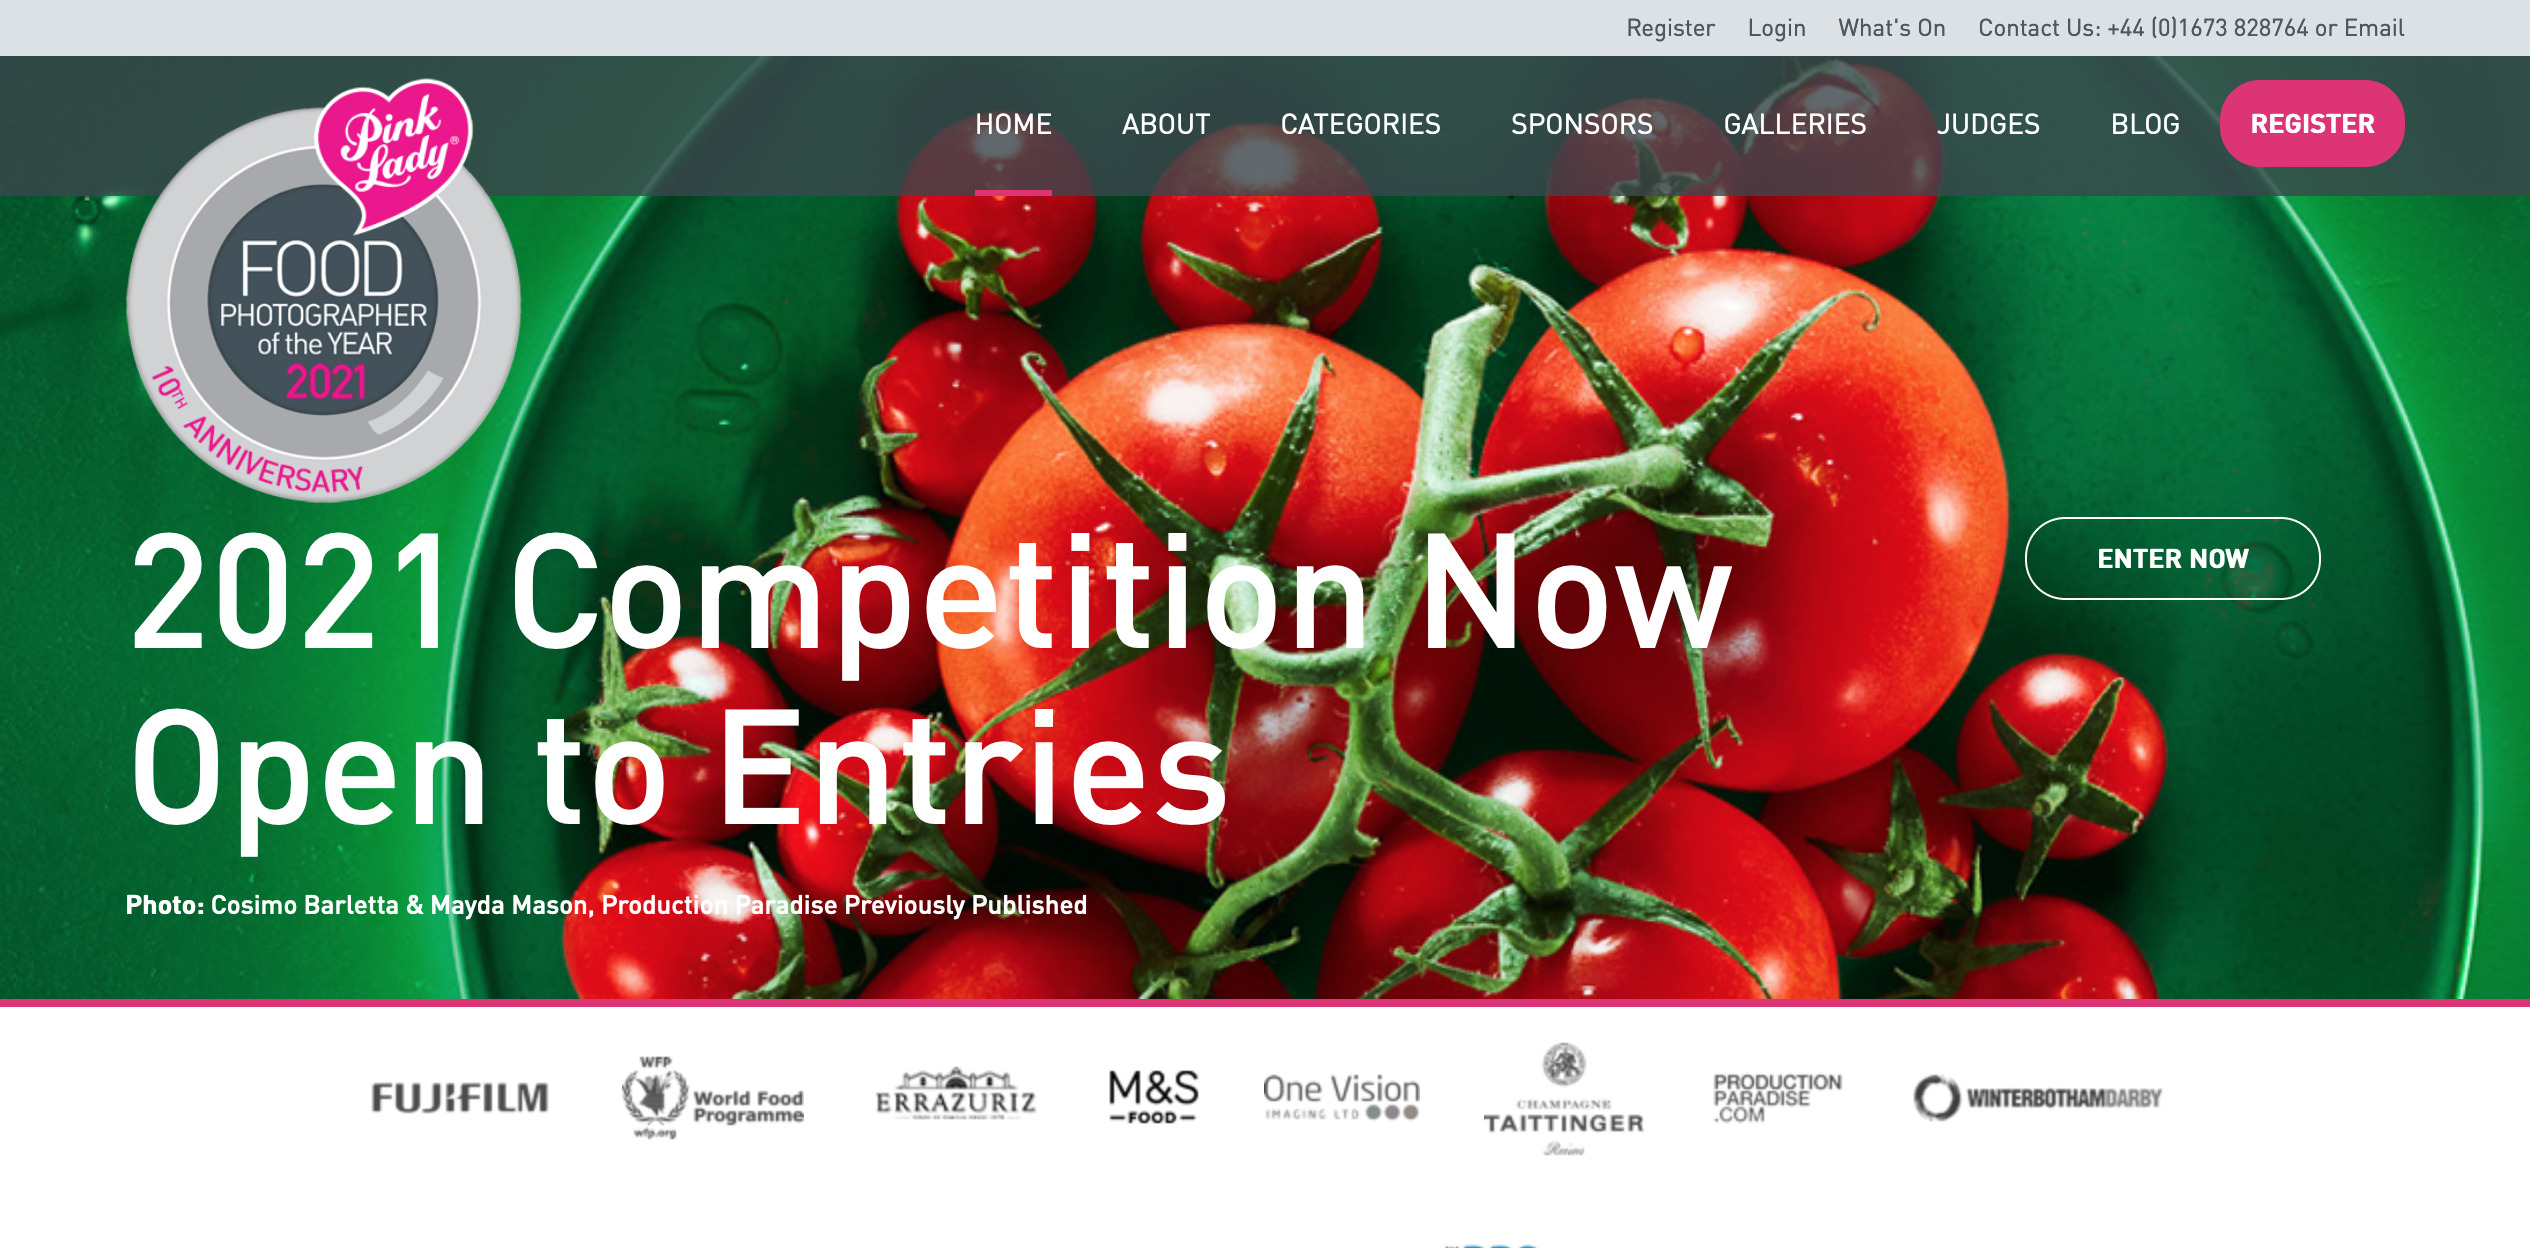 food photography awards contest, pink lady, PHOODE